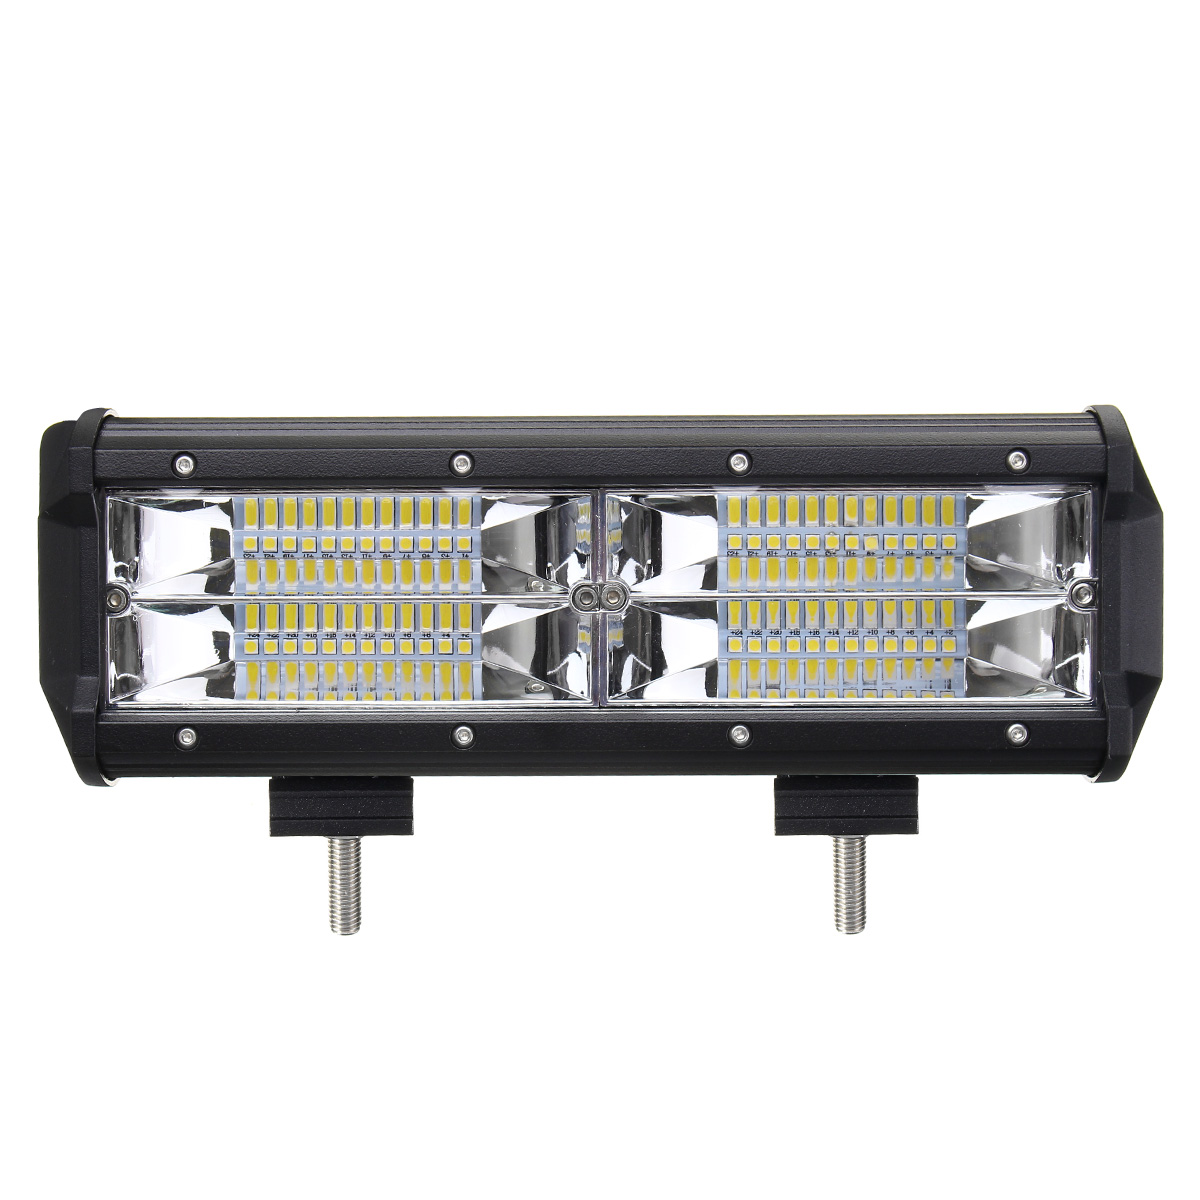 8d 7 inch 216w led light bar flood spot combo off road car truck 10 30v. Black Bedroom Furniture Sets. Home Design Ideas